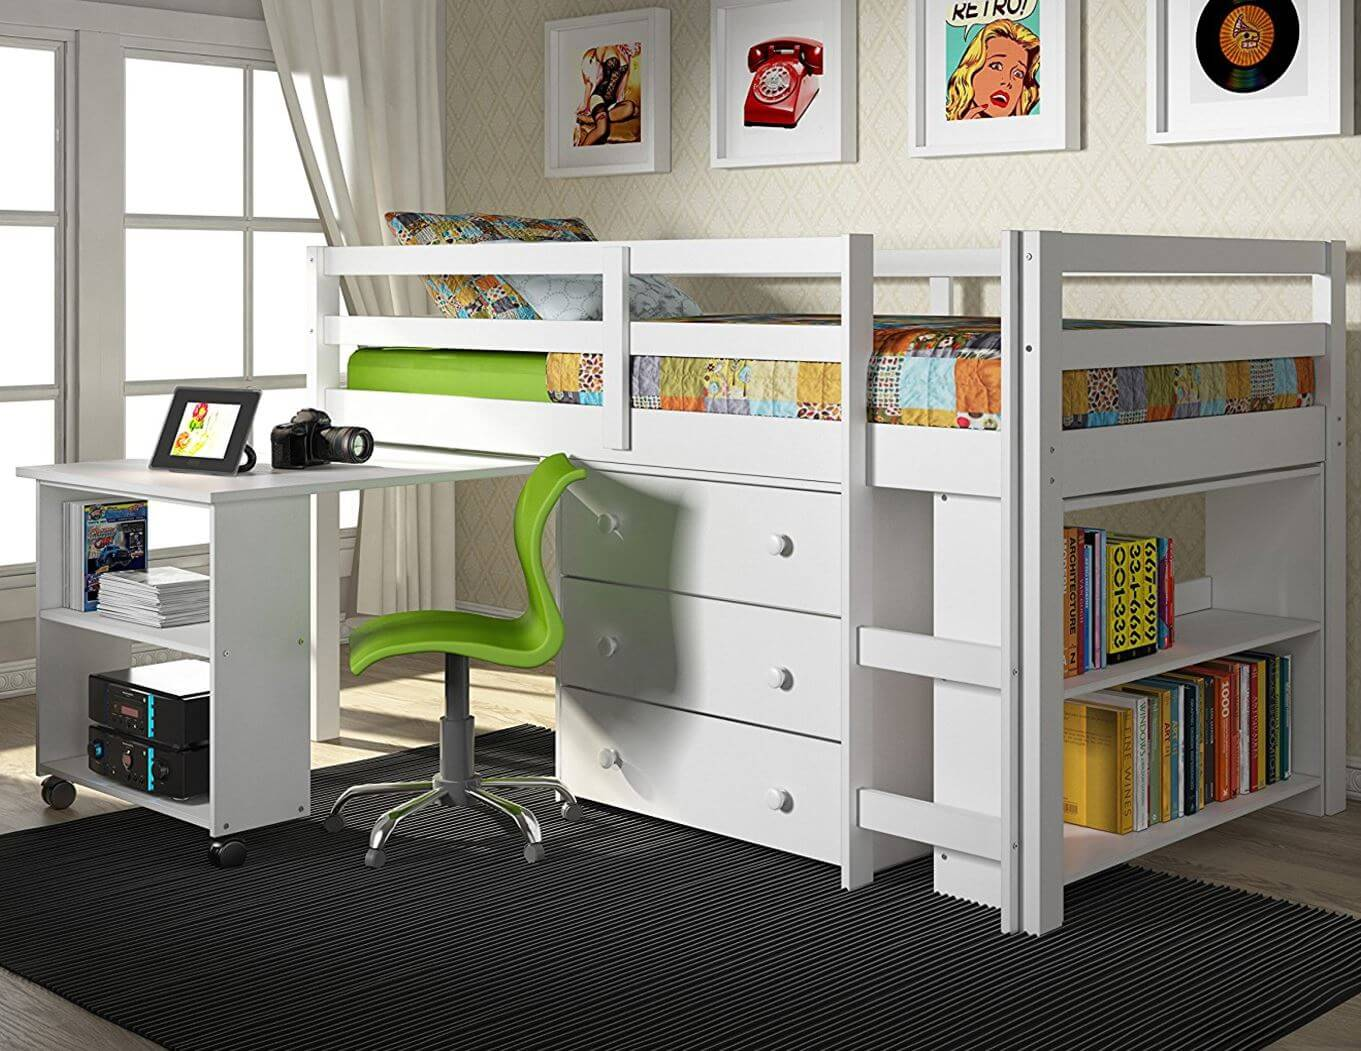 zq xpx and stairssingapore constructed desk in kidsbunk teenagers beds wood argos on plus enc bed birch stairs with absorbing bedroomnew size also storage then bunk flagrant bedroom kids slide tempting